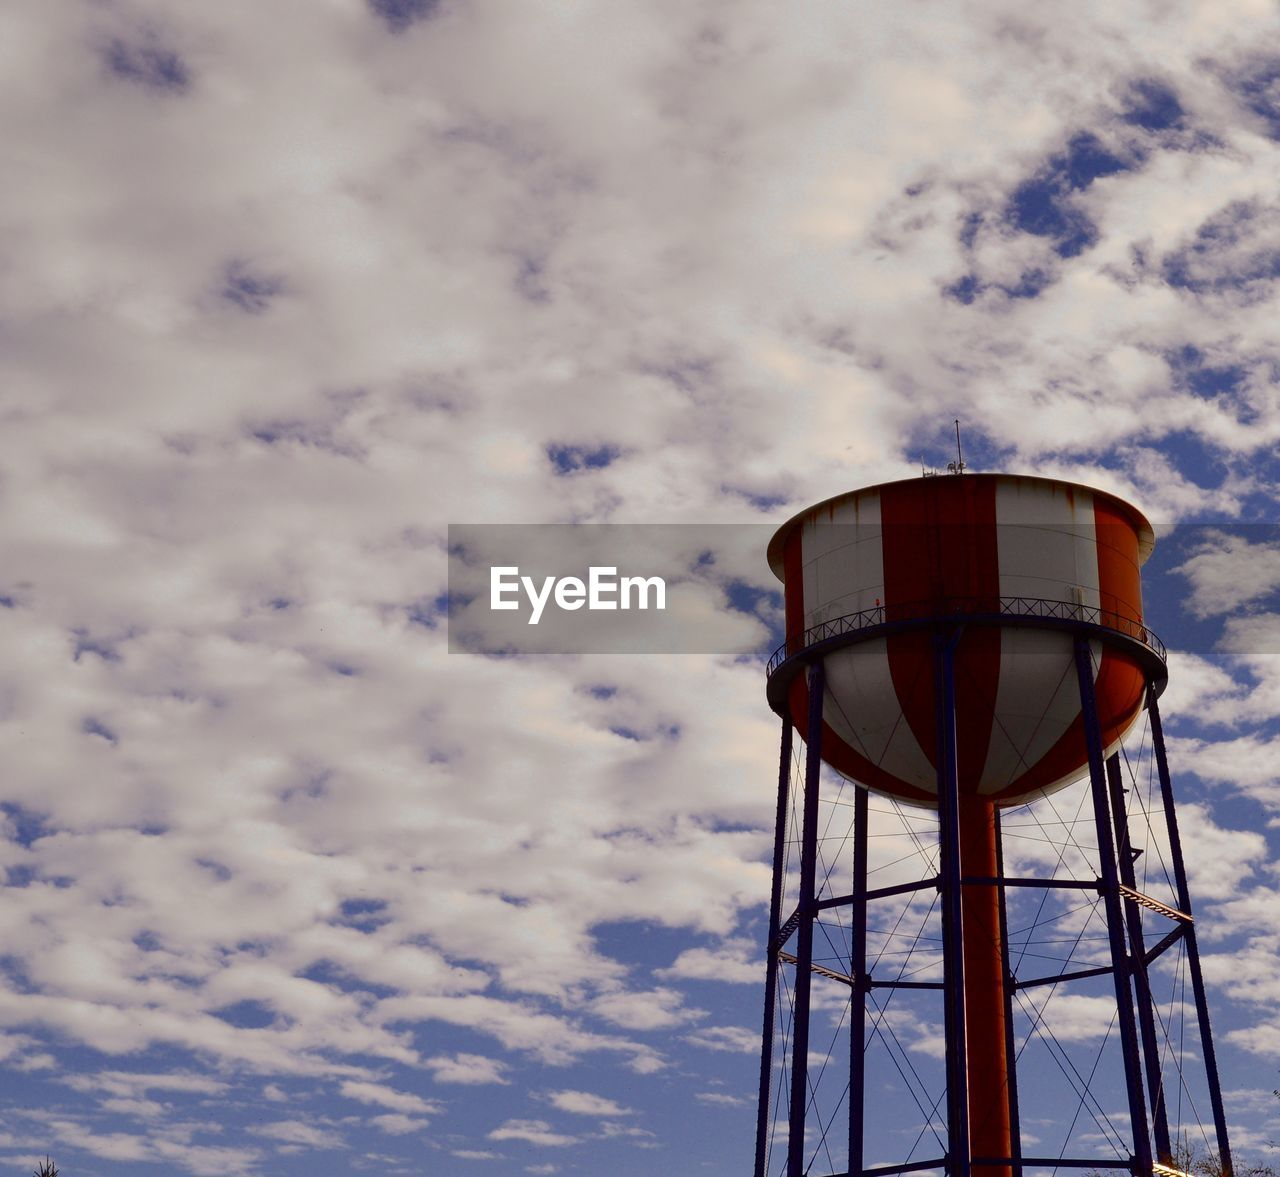 cloud - sky, sky, low angle view, water tower - storage tank, architecture, built structure, tower, storage tank, nature, no people, water conservation, day, outdoors, building exterior, tall - high, safety, guidance, amusement park, security